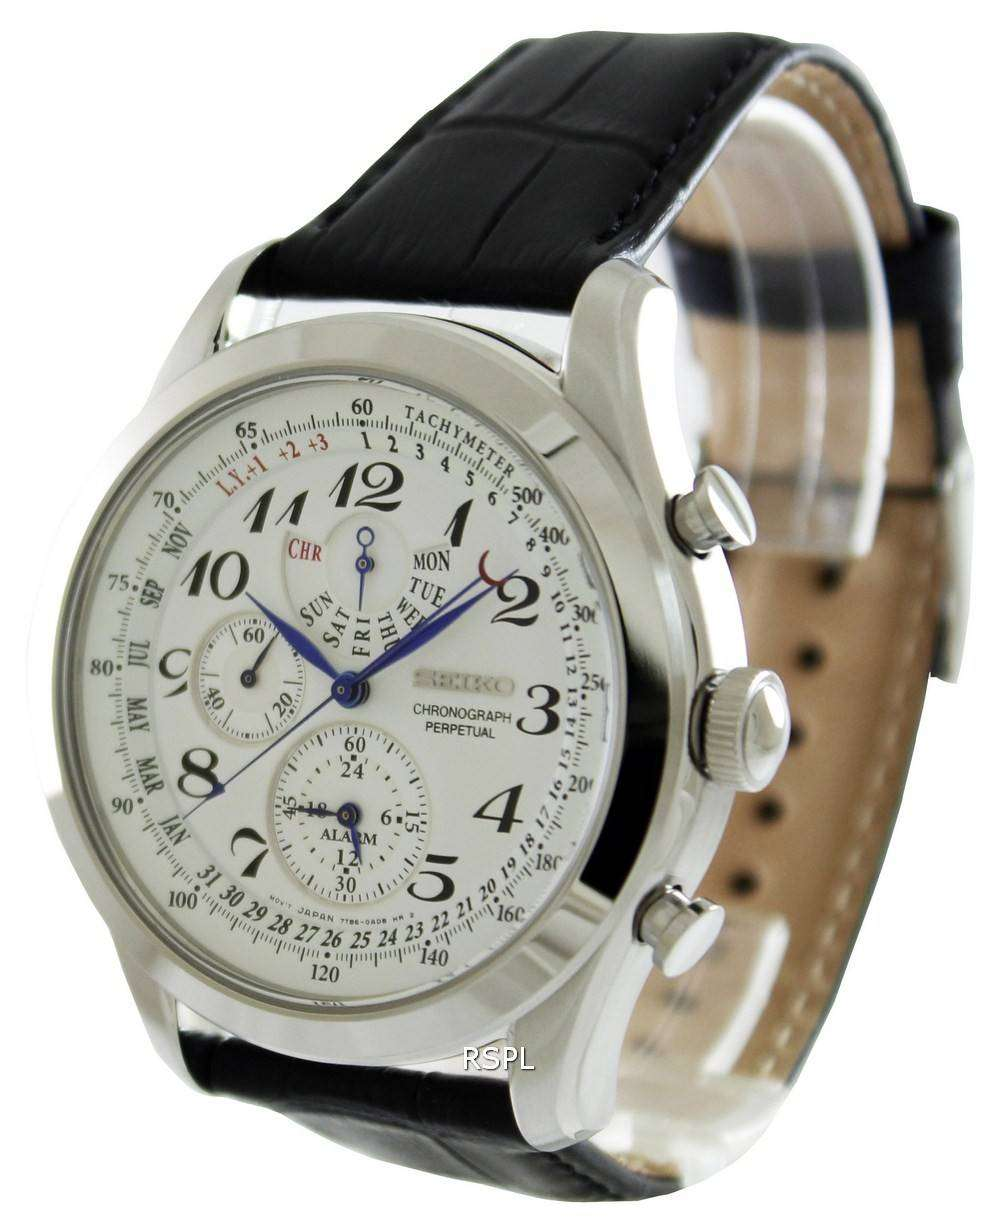 Seiko chronograph perpetual calendar spc131p1 spc131p mens watch downunderwatches for Calendar watches